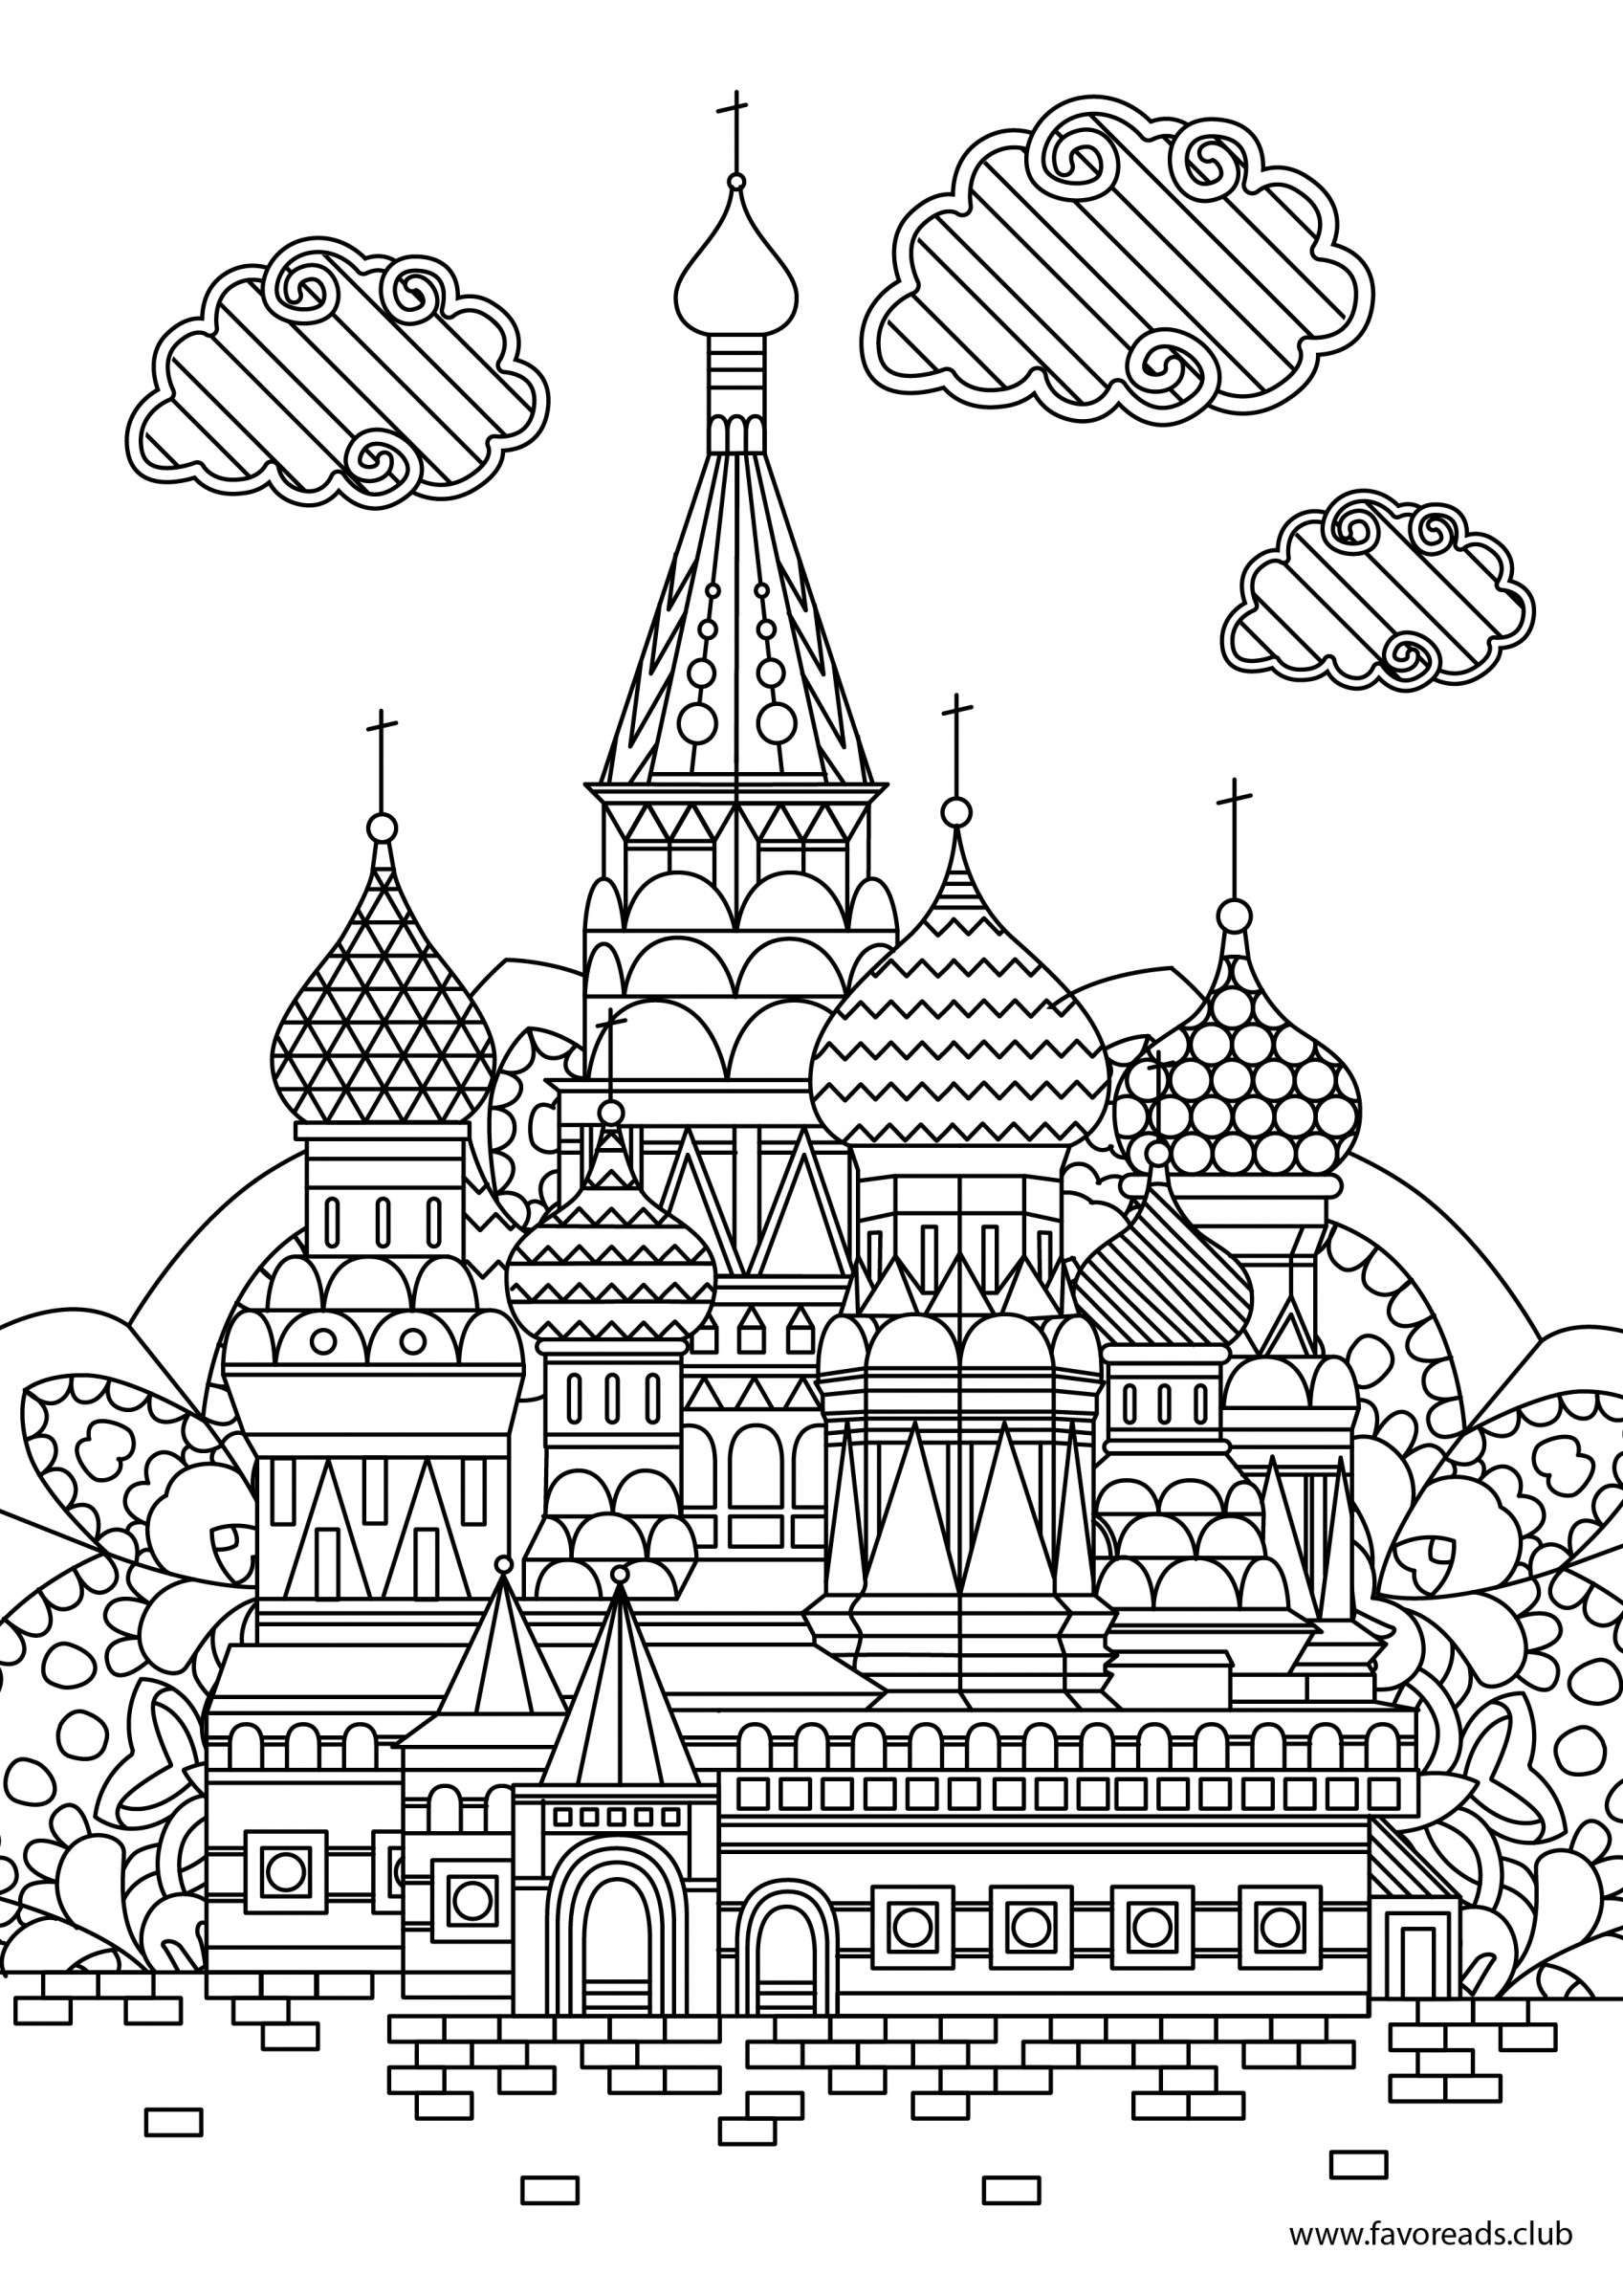 Coloring book landmark for adults - Explore Adult Coloring Moscow And More